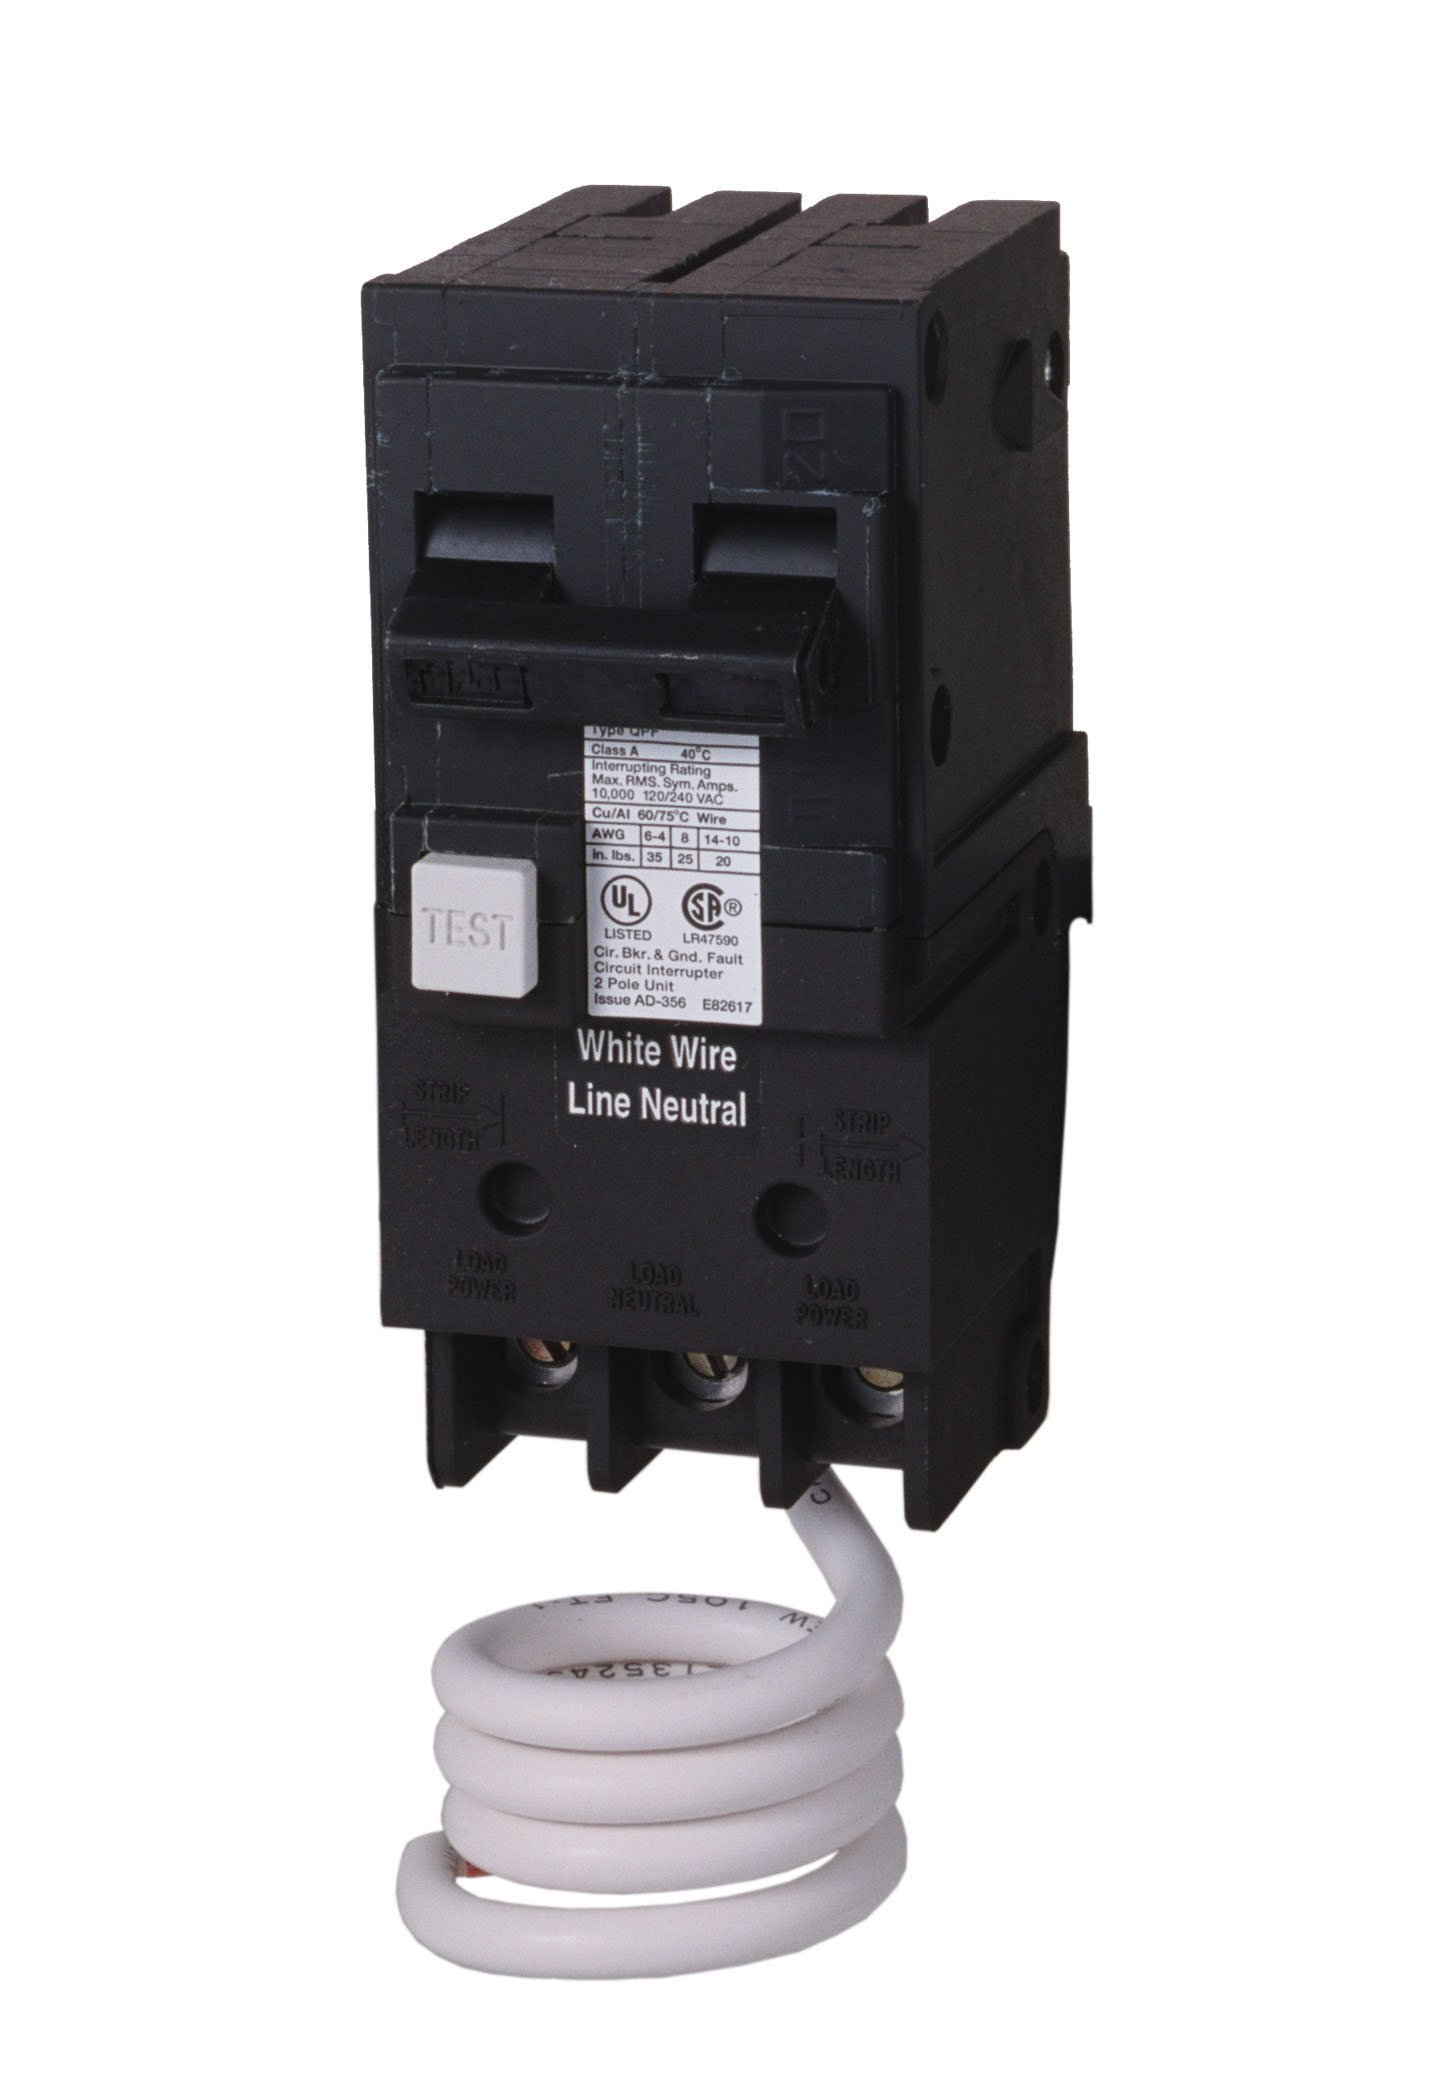 Siemens QF220 20-Amp 2 Pole 240-Volt Ground Fault Circuit Interrupter (Discontinued by Manufacturer) by Siemens (Image #1)